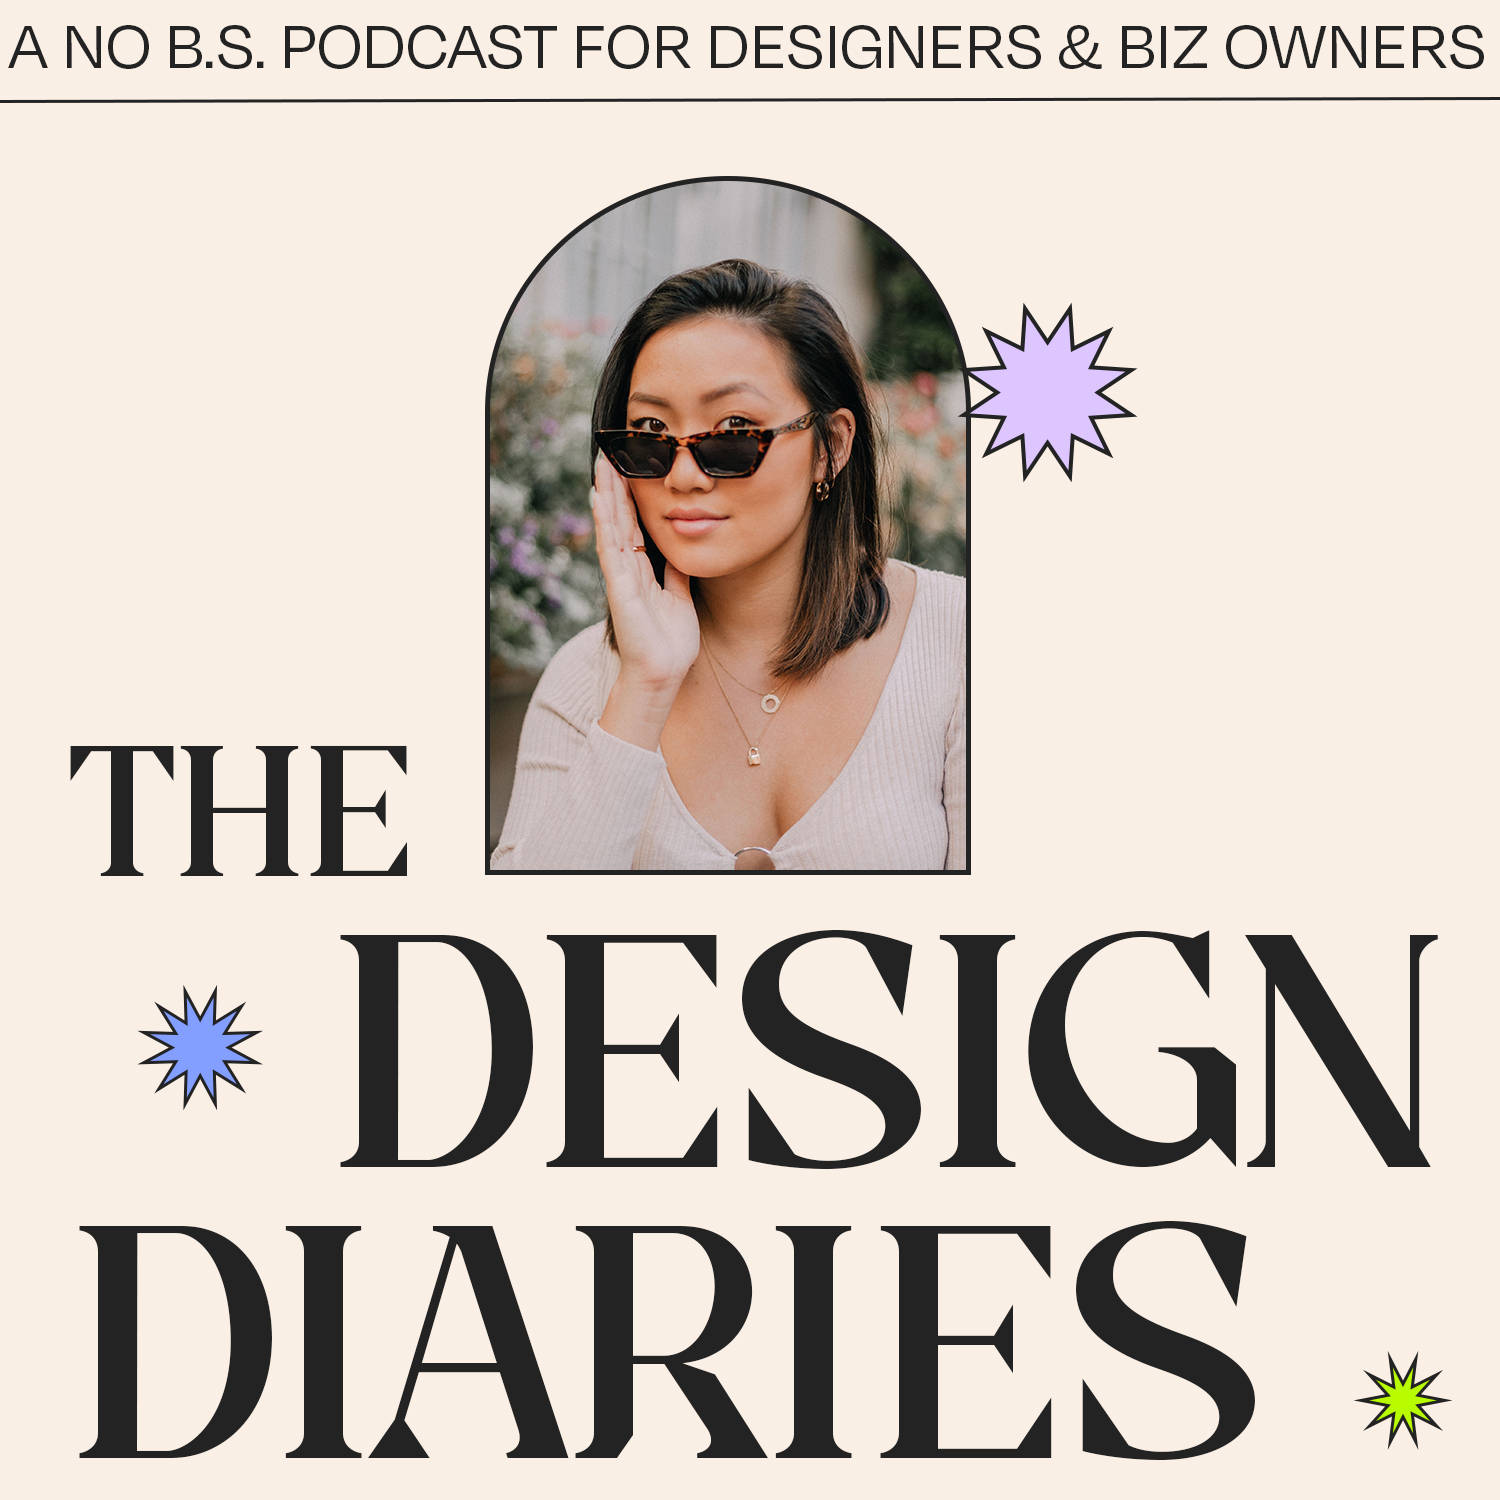 The design diaries podcast cover